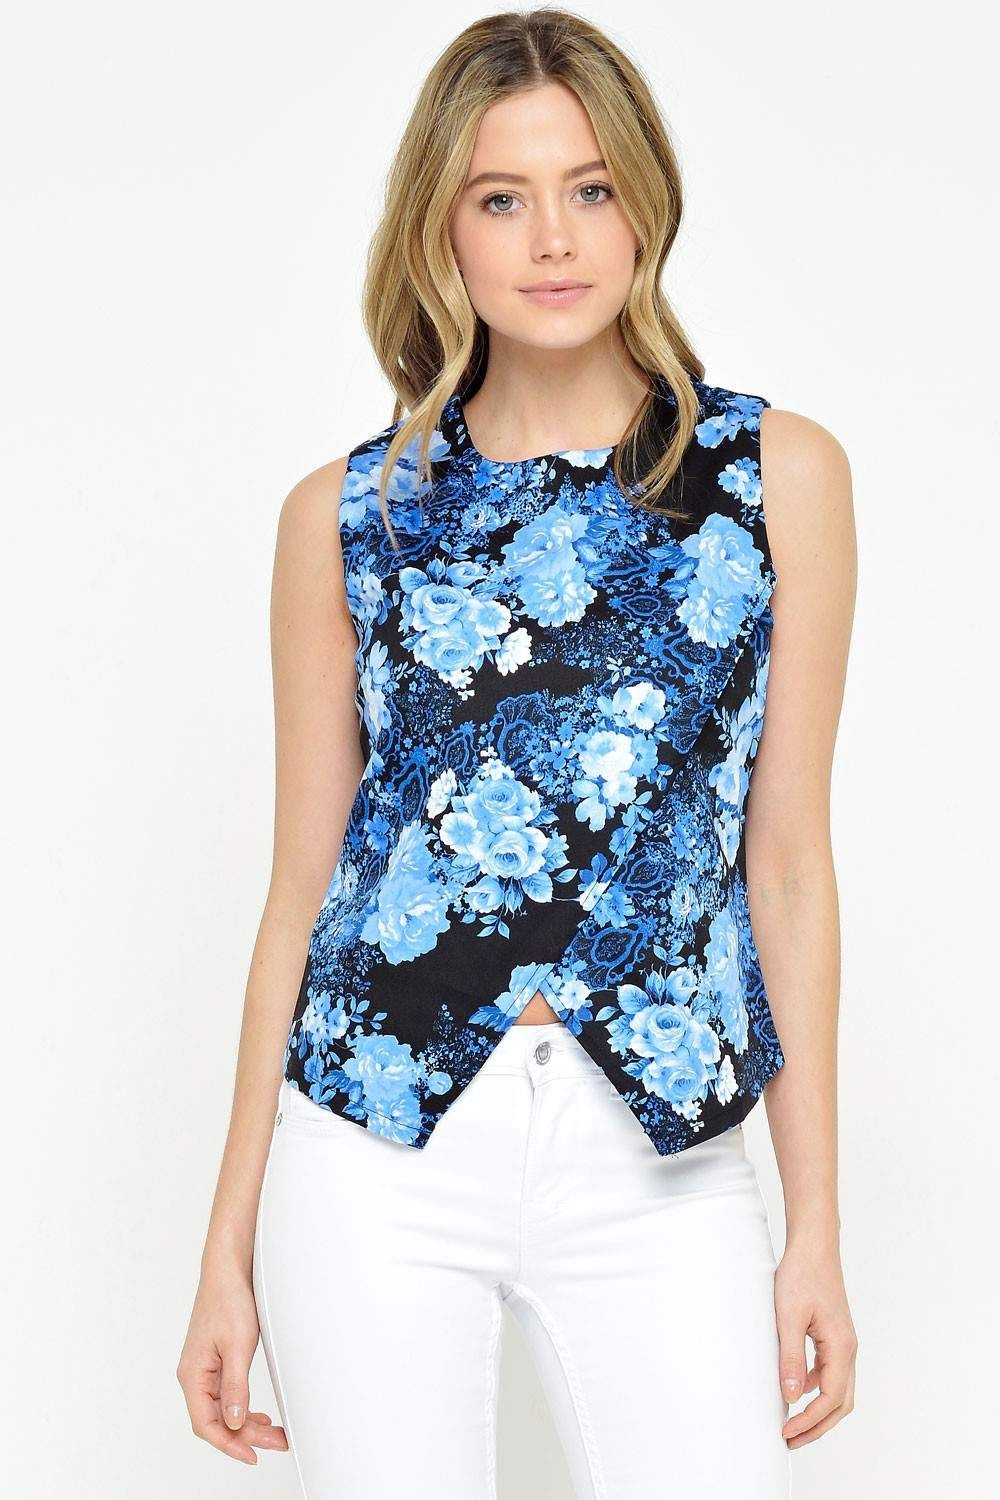 Find great deals on eBay for blue floral top. Shop with confidence.